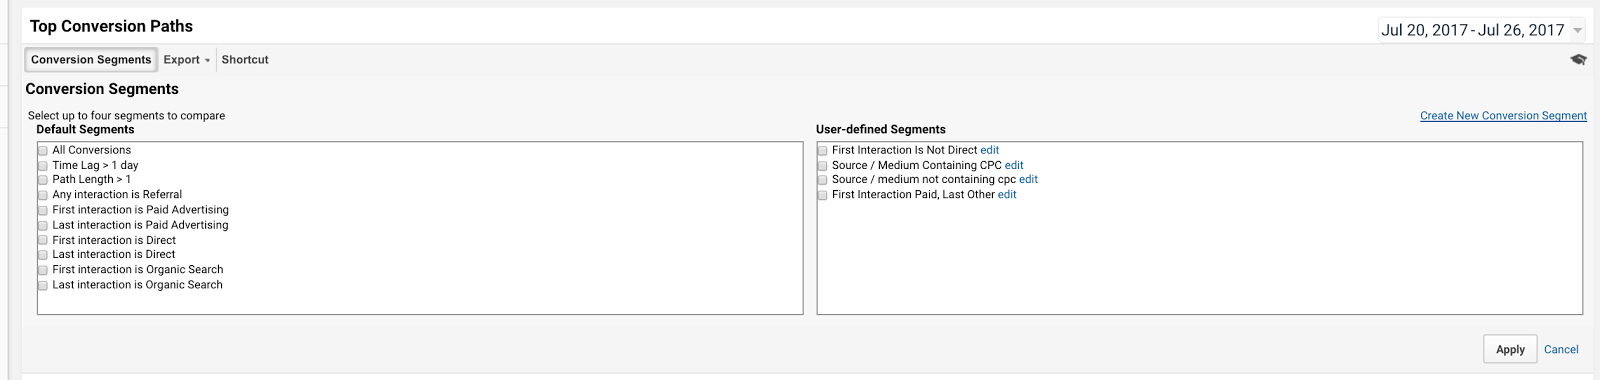 Google Analytics provides some default conversion segments for you, but you can also create your own.